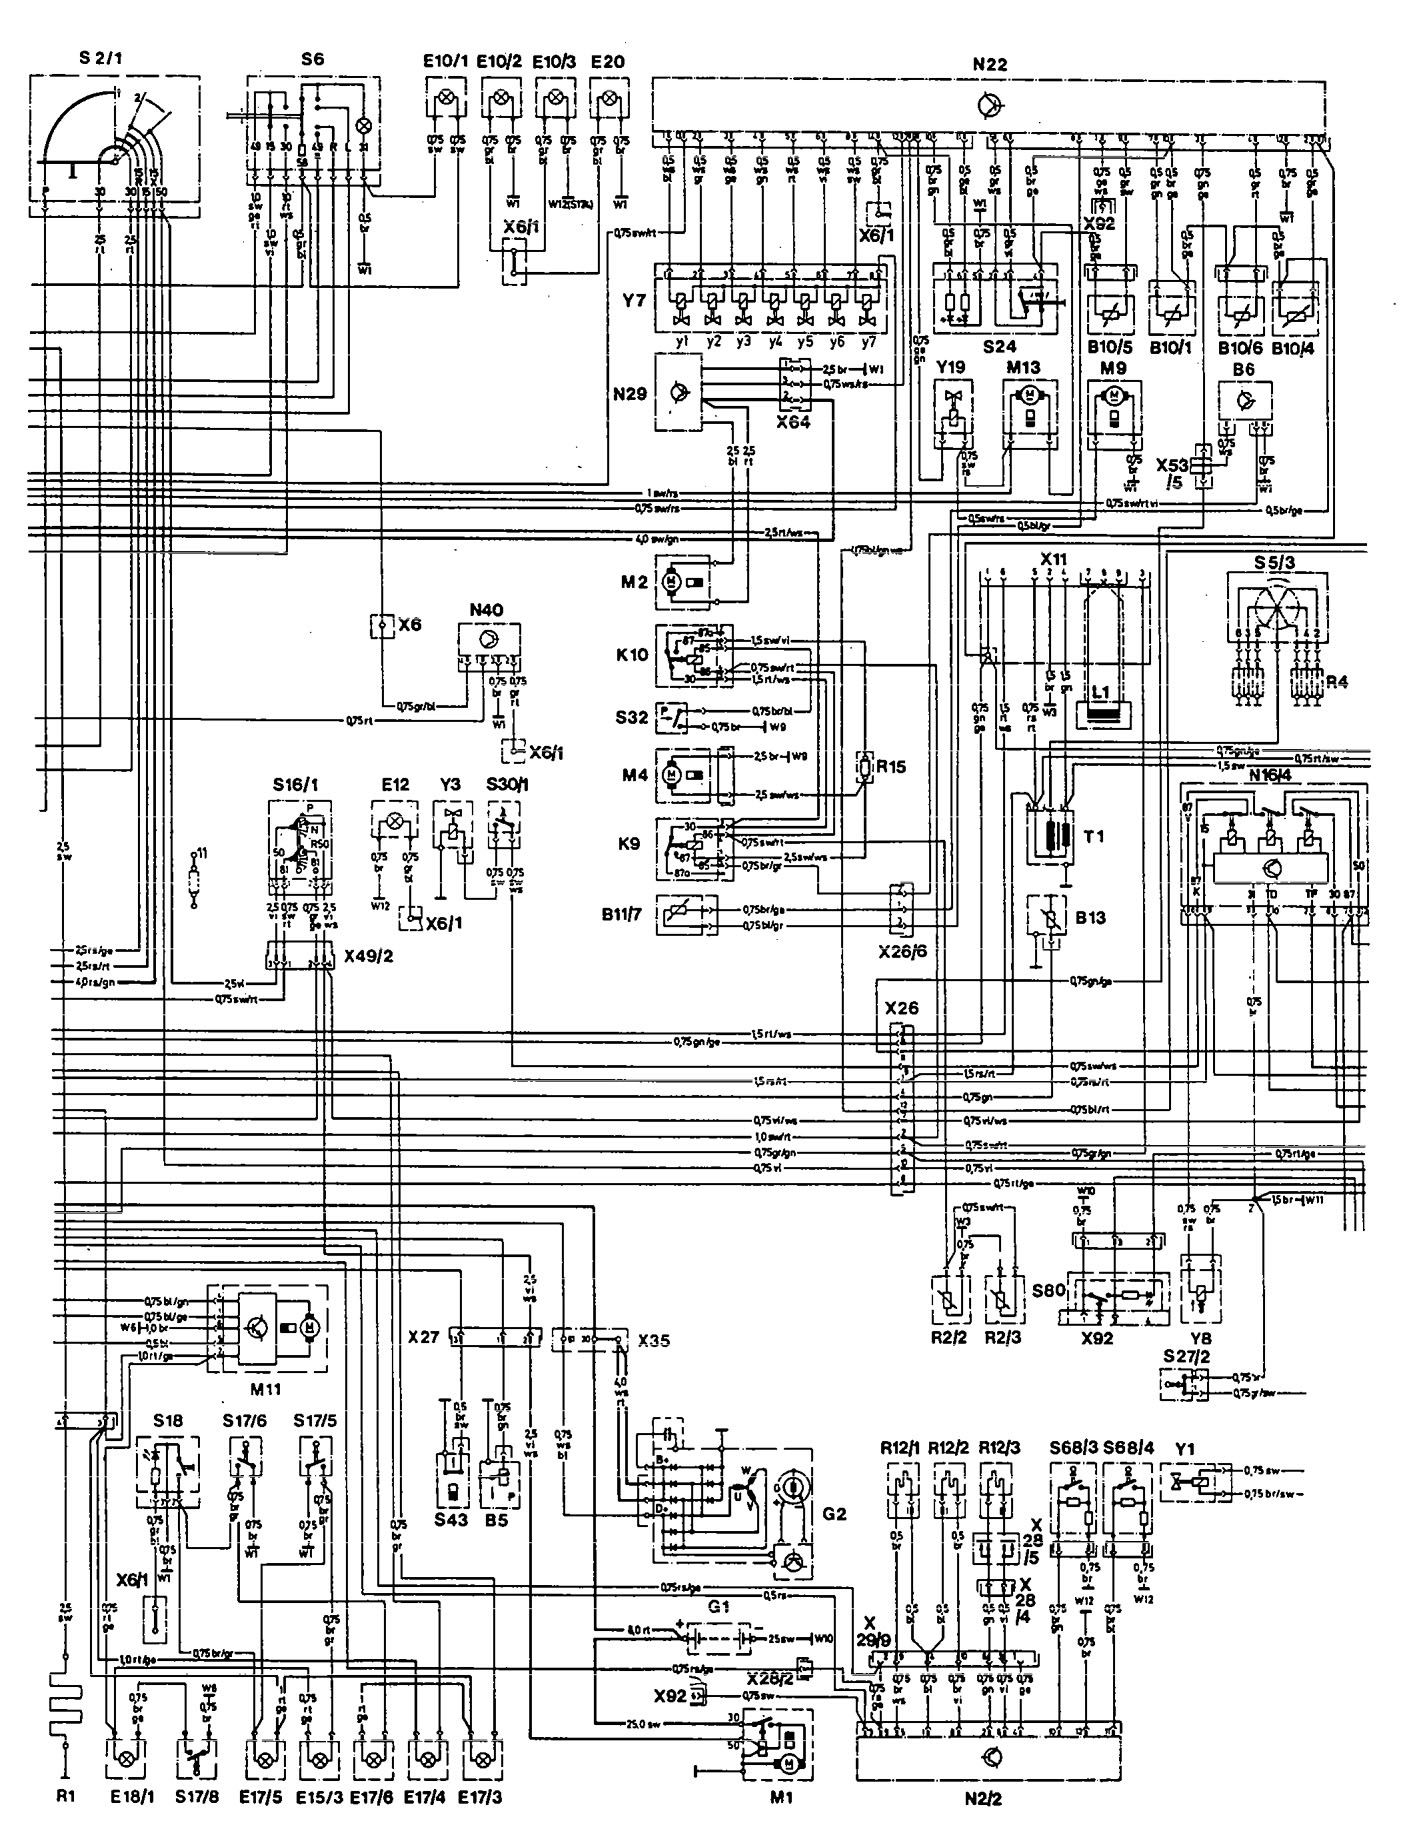 Mercedes Fuse Box Diagram 93 400e Opinions About Wiring Benz S500 Engine U2022 For Free On A 2006 Chart C240